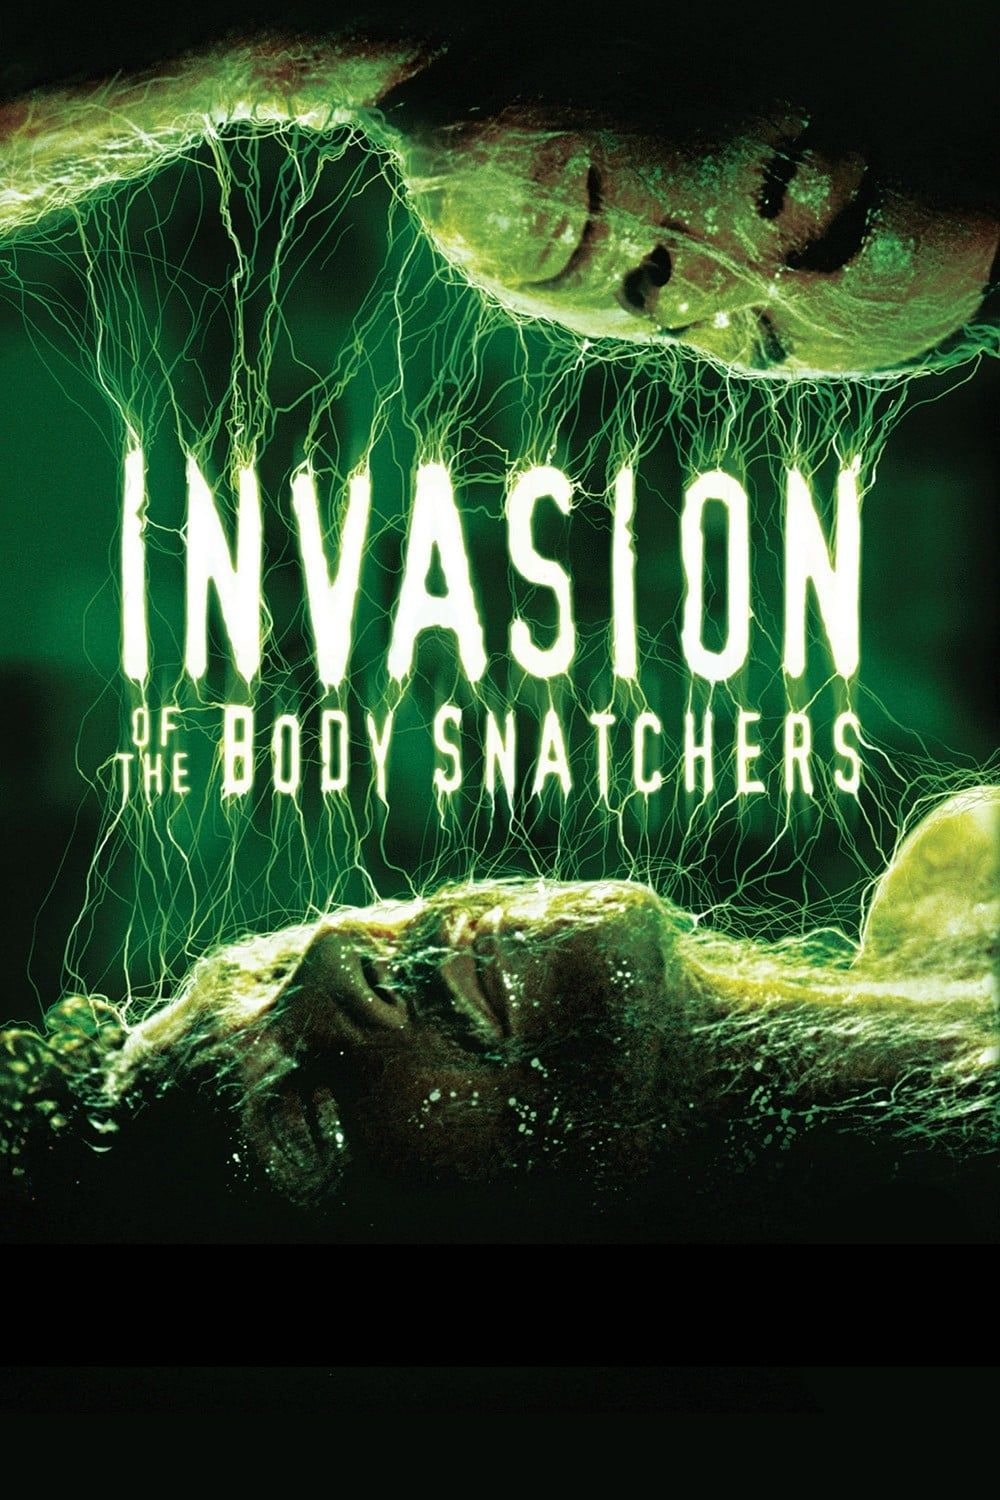 .Invasion of the Body Snatchers FULL MOVIE Streaming